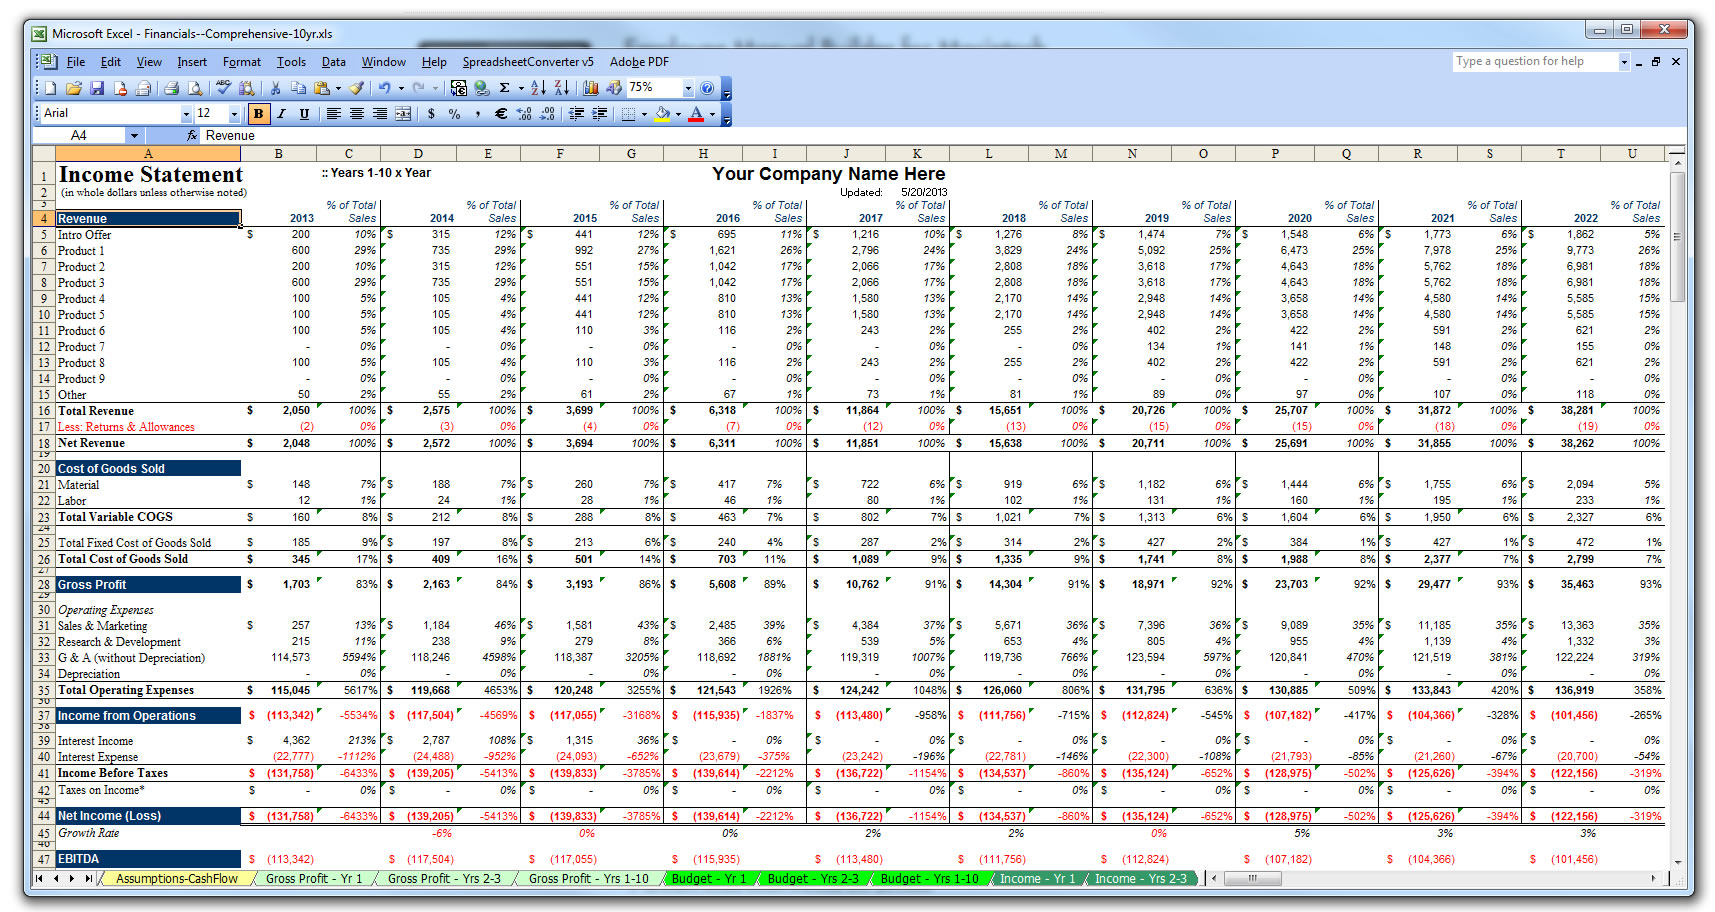 10 year business plan financial budget projection model in excel 10 year business plan financial budget projection model in excel friedricerecipe Image collections